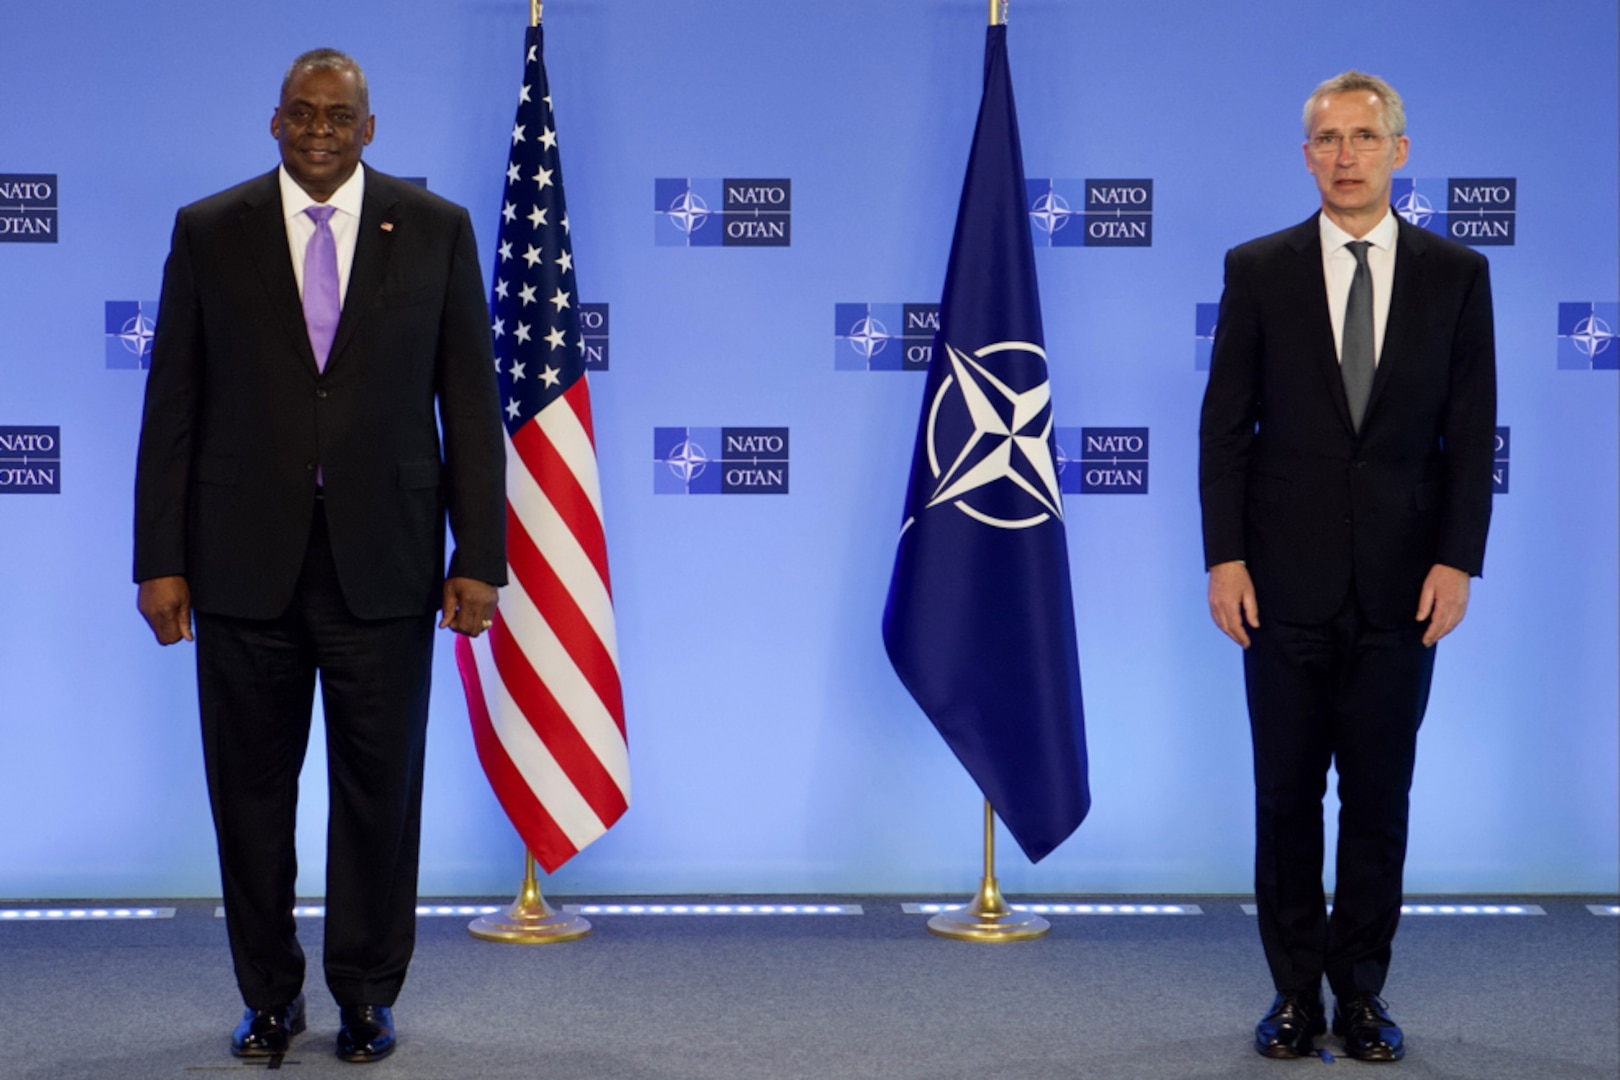 Two men stand beside each other next to U.S. and NATO flags.